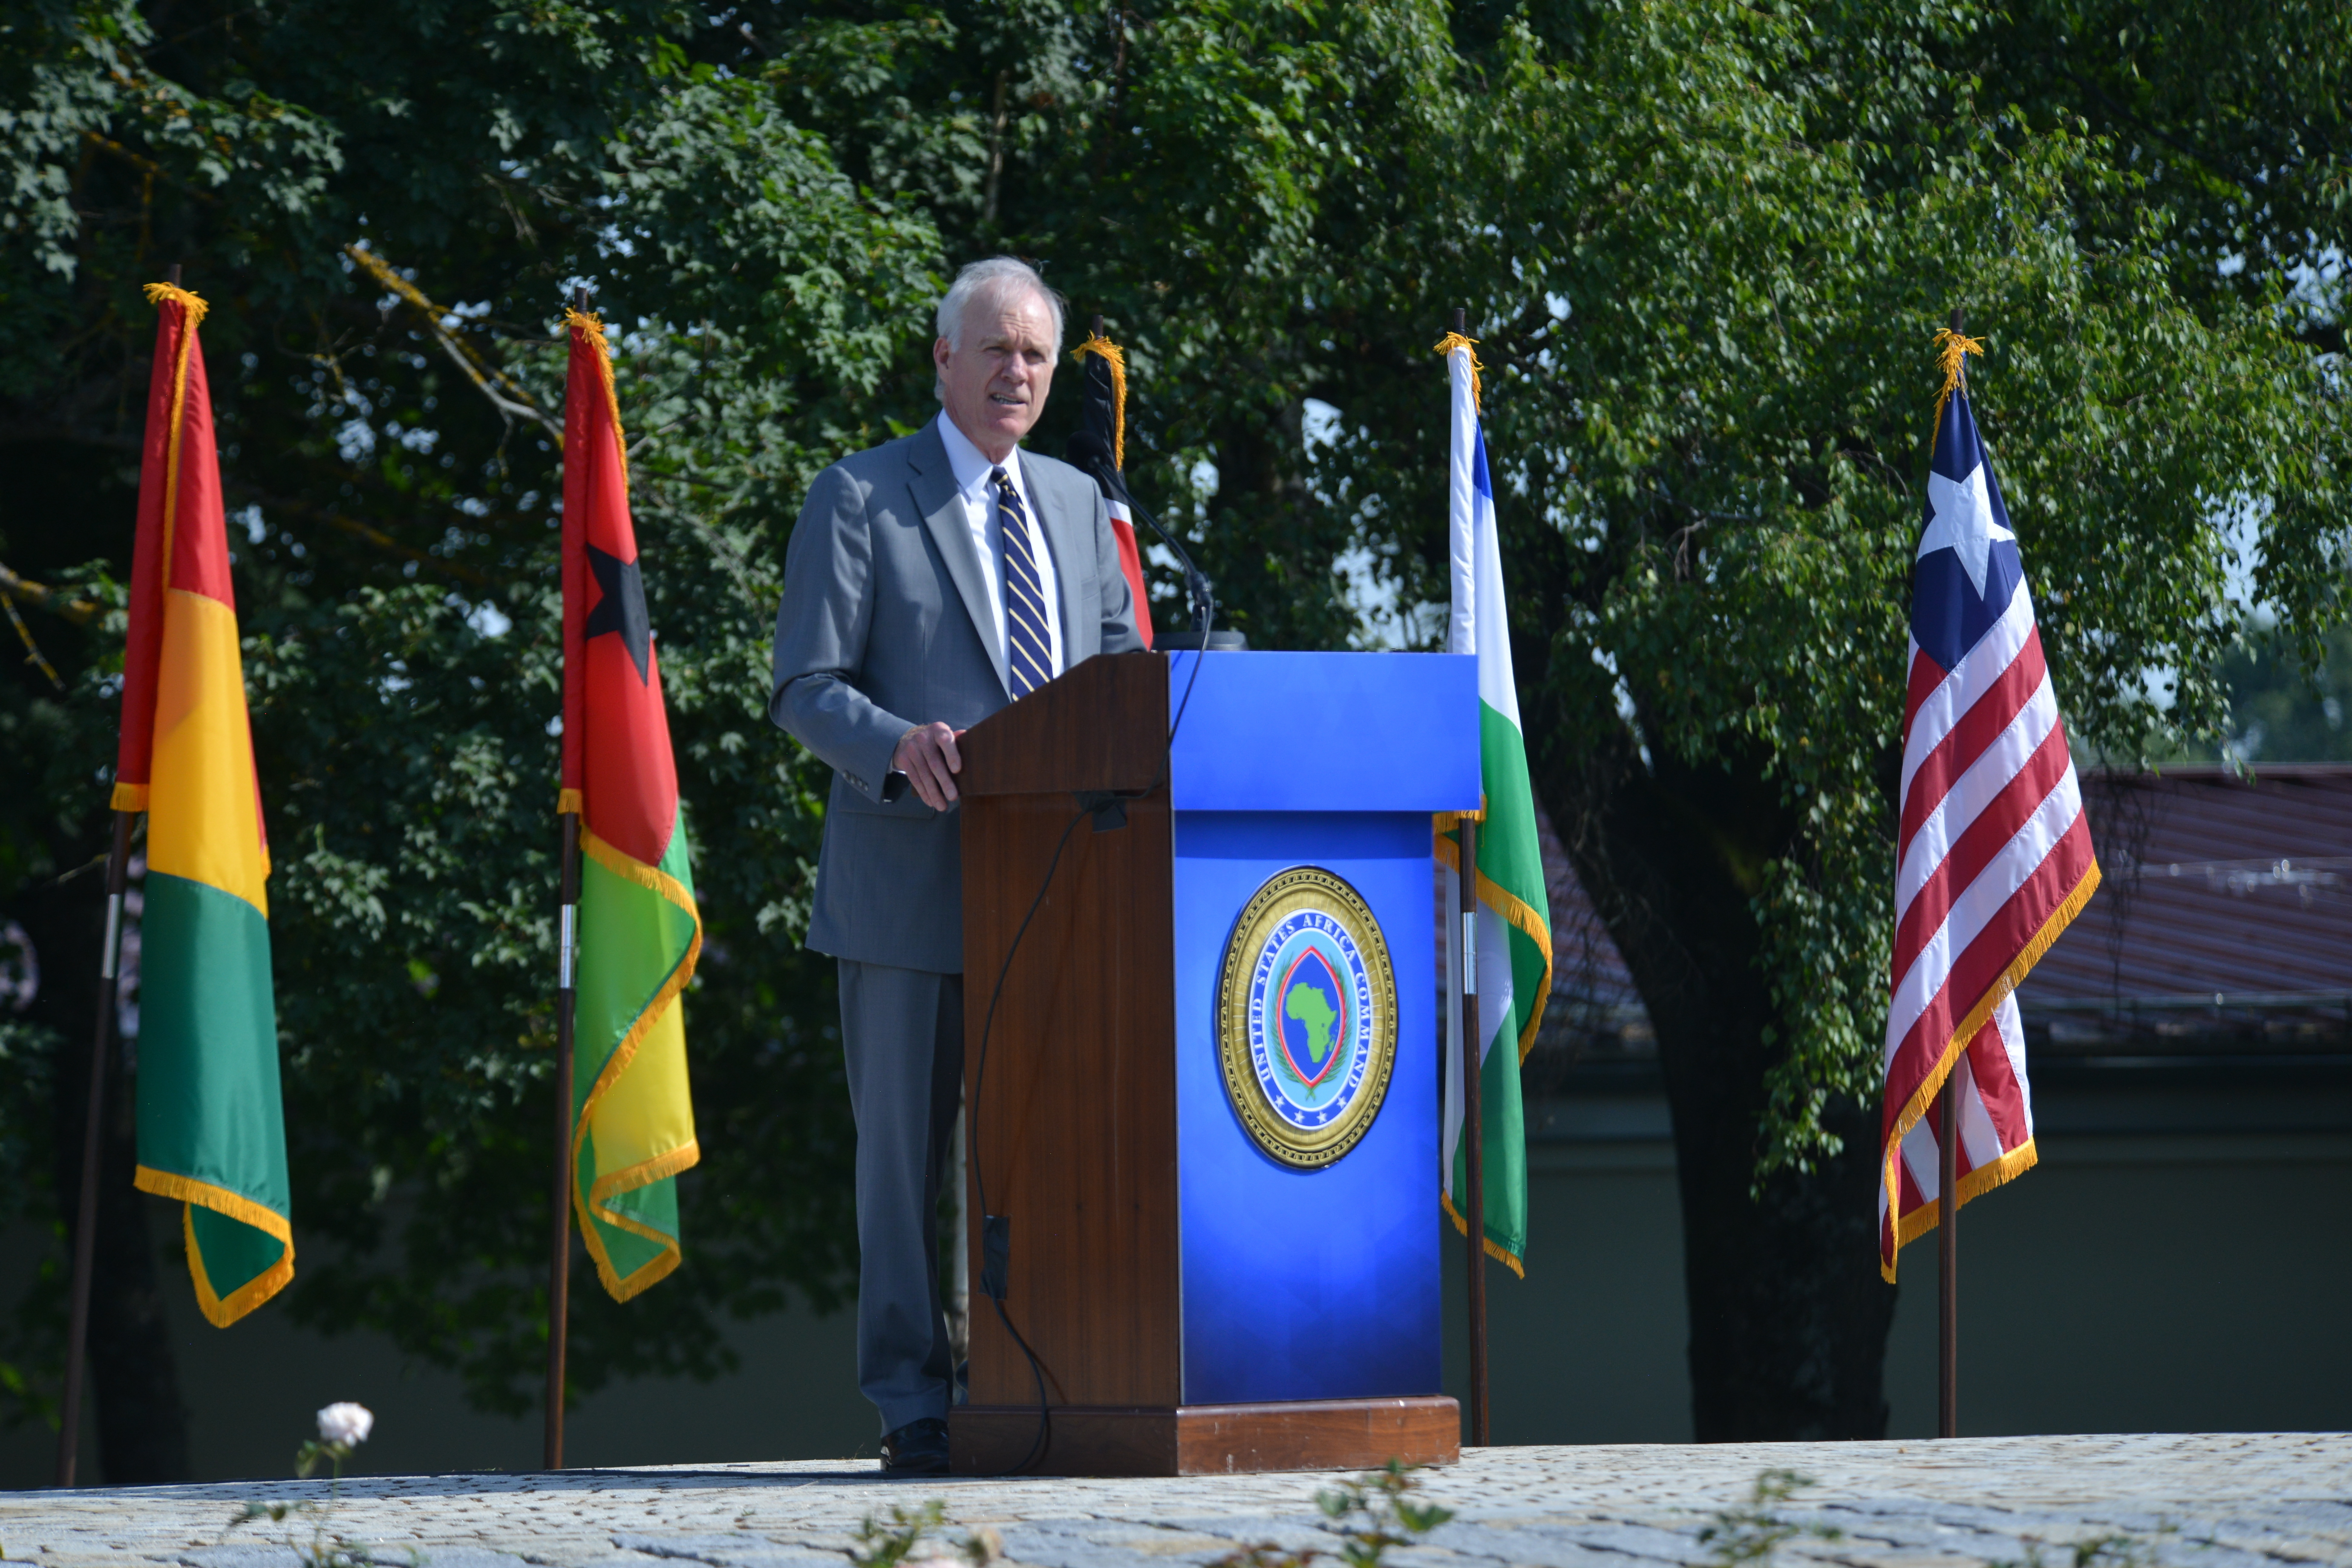 Performing the Duties of the Deputy Secretary of Defense Richard V. Spencer speaks during the AFRICOM change of command ceremony at Patch Barracks in Stuttgart, Germany, July 26, 2019. AFRICOM is one of six of the U.S. Defense Department's geographic unified commands and is responsible to the Secretary of Defense for military relations with African nations, the African Union, and African regional security organizations. (U.S. Army photo by Staff Sgt. Grady Jones/Released)